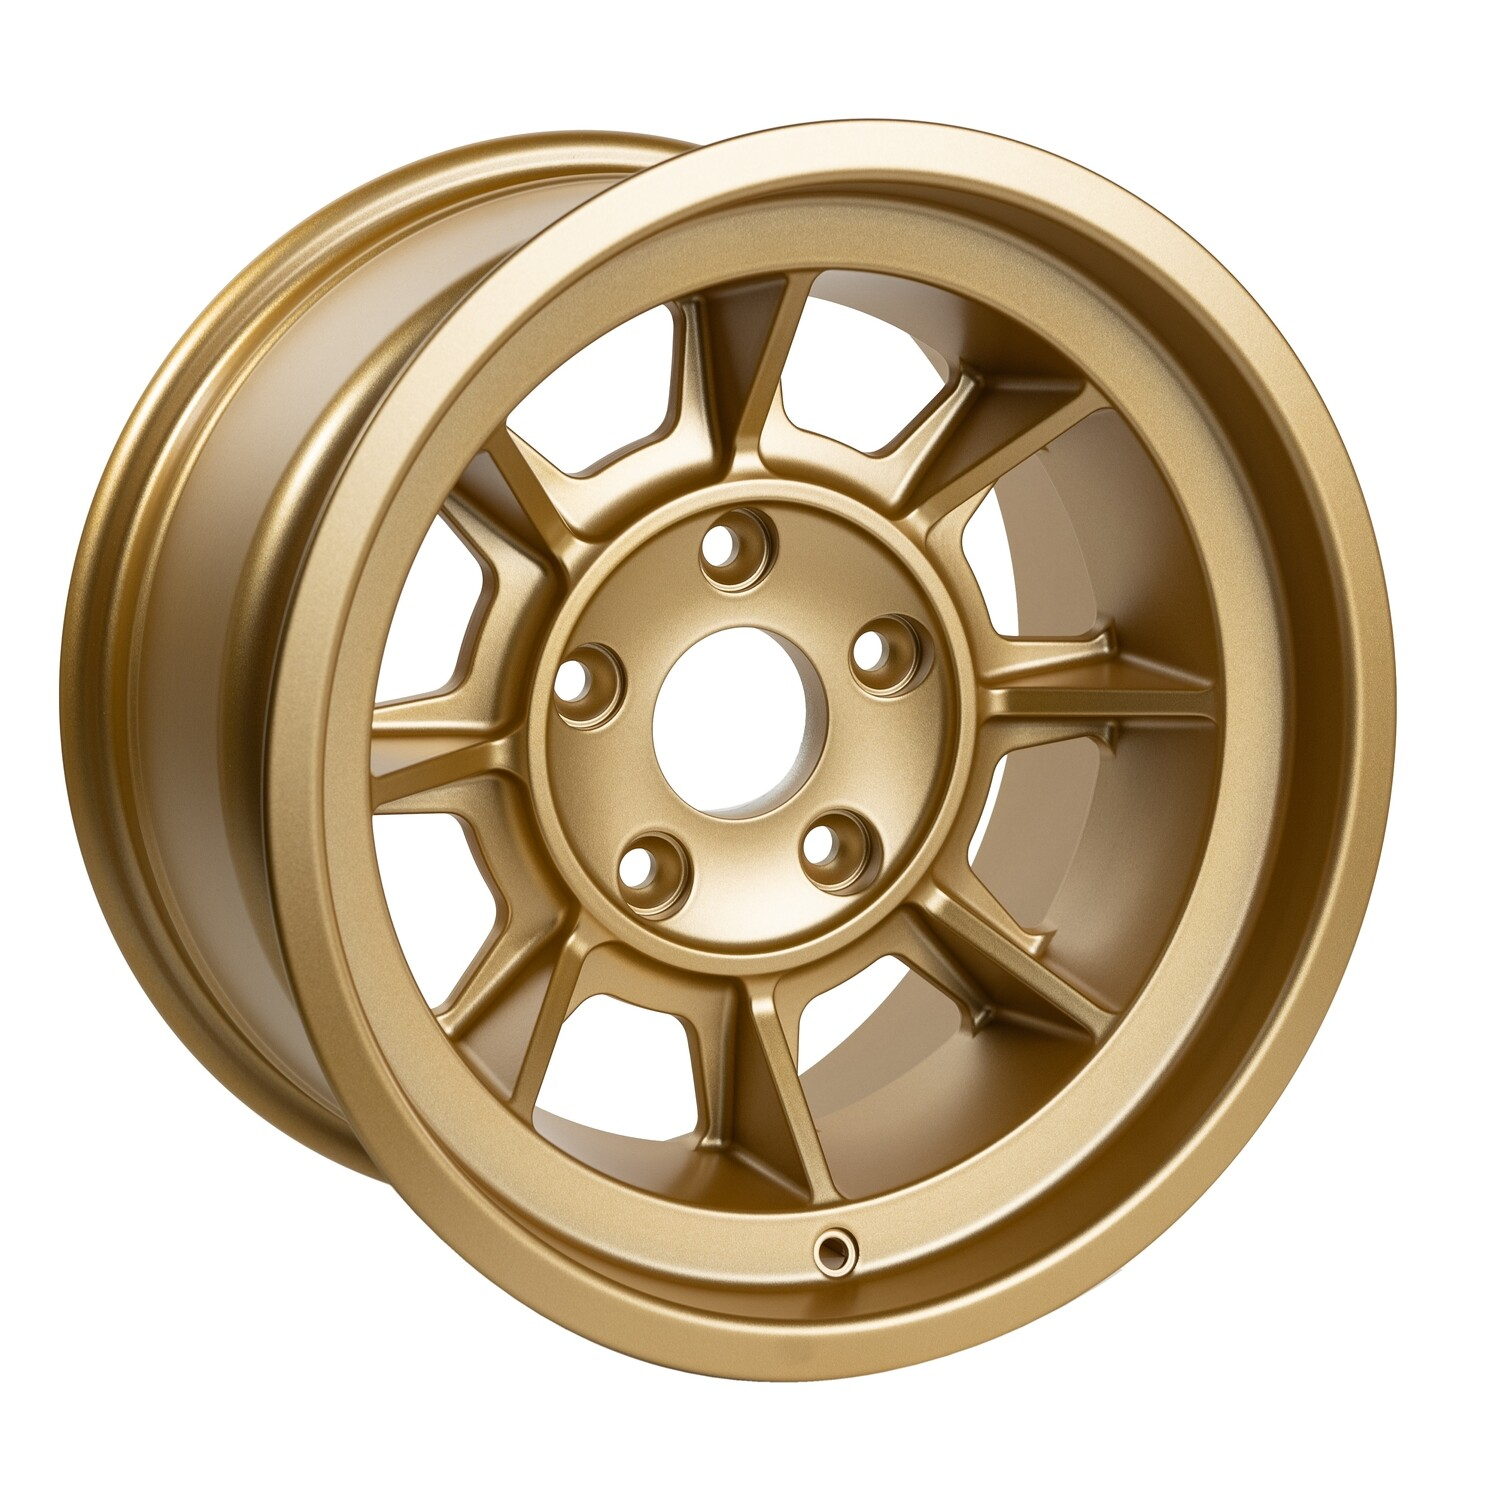 PAG1690 Satin Gold 16 x 9